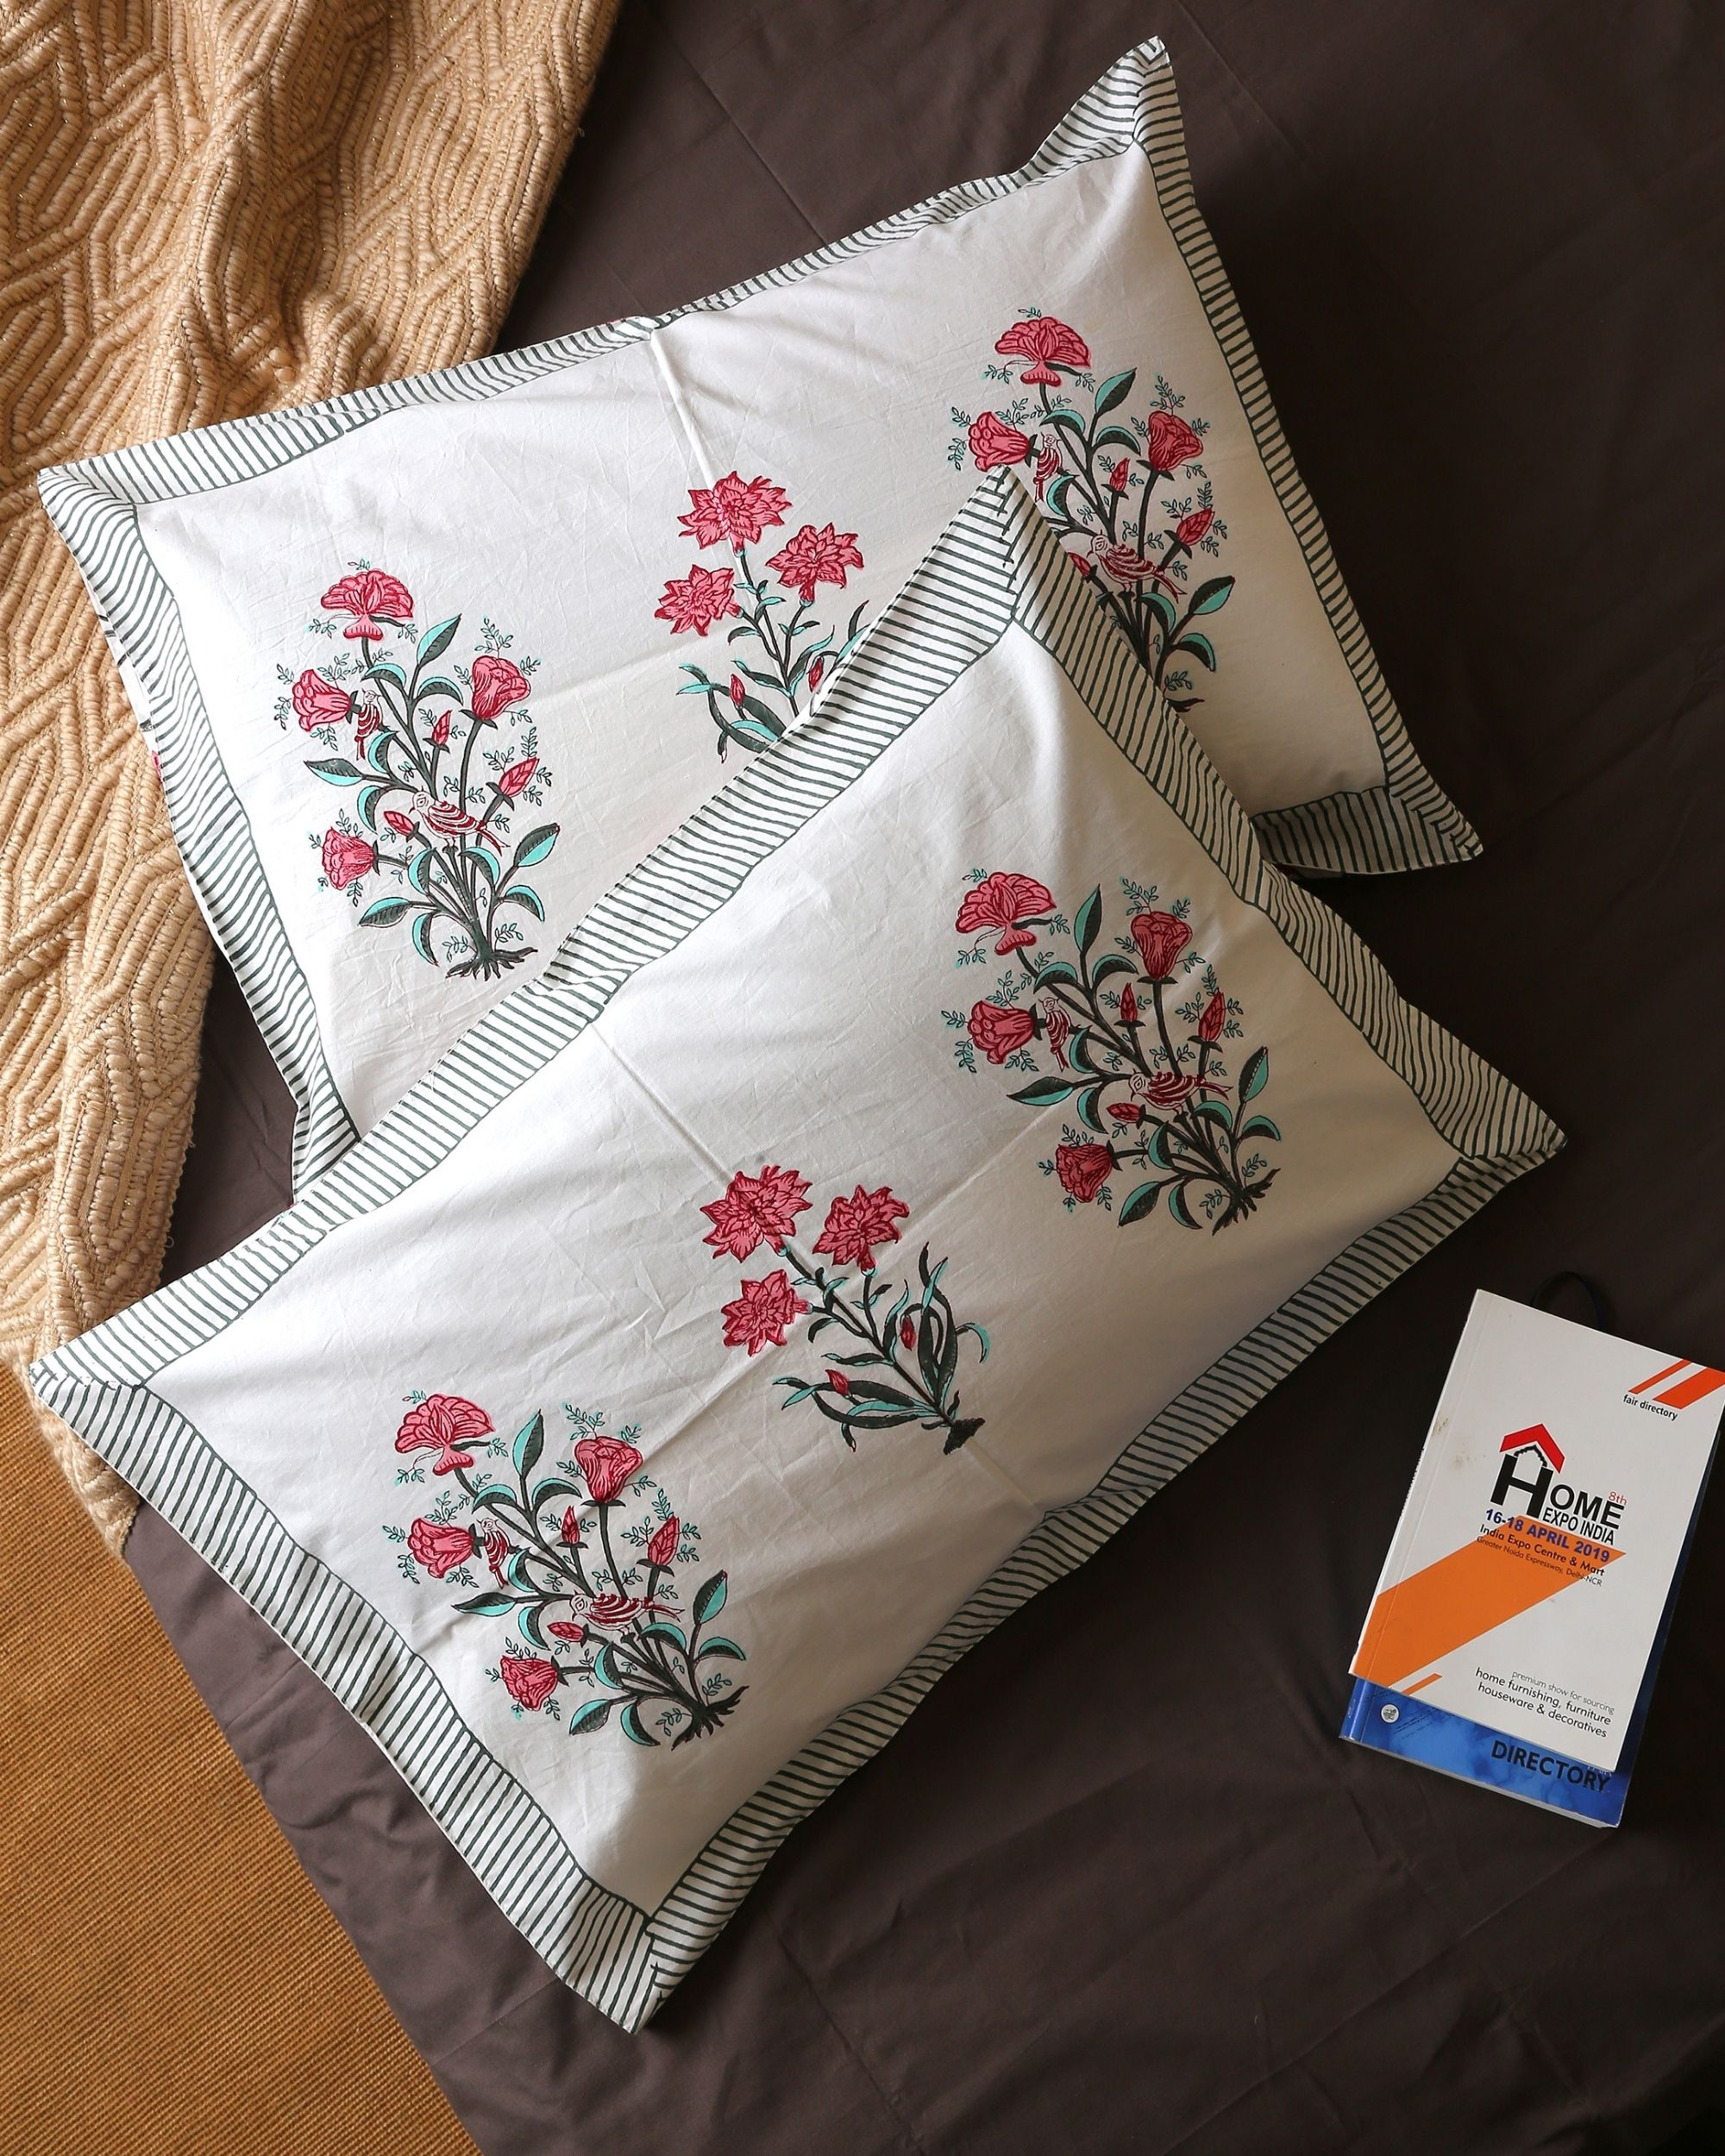 Pink cypress bouquet pillow covers - set of two